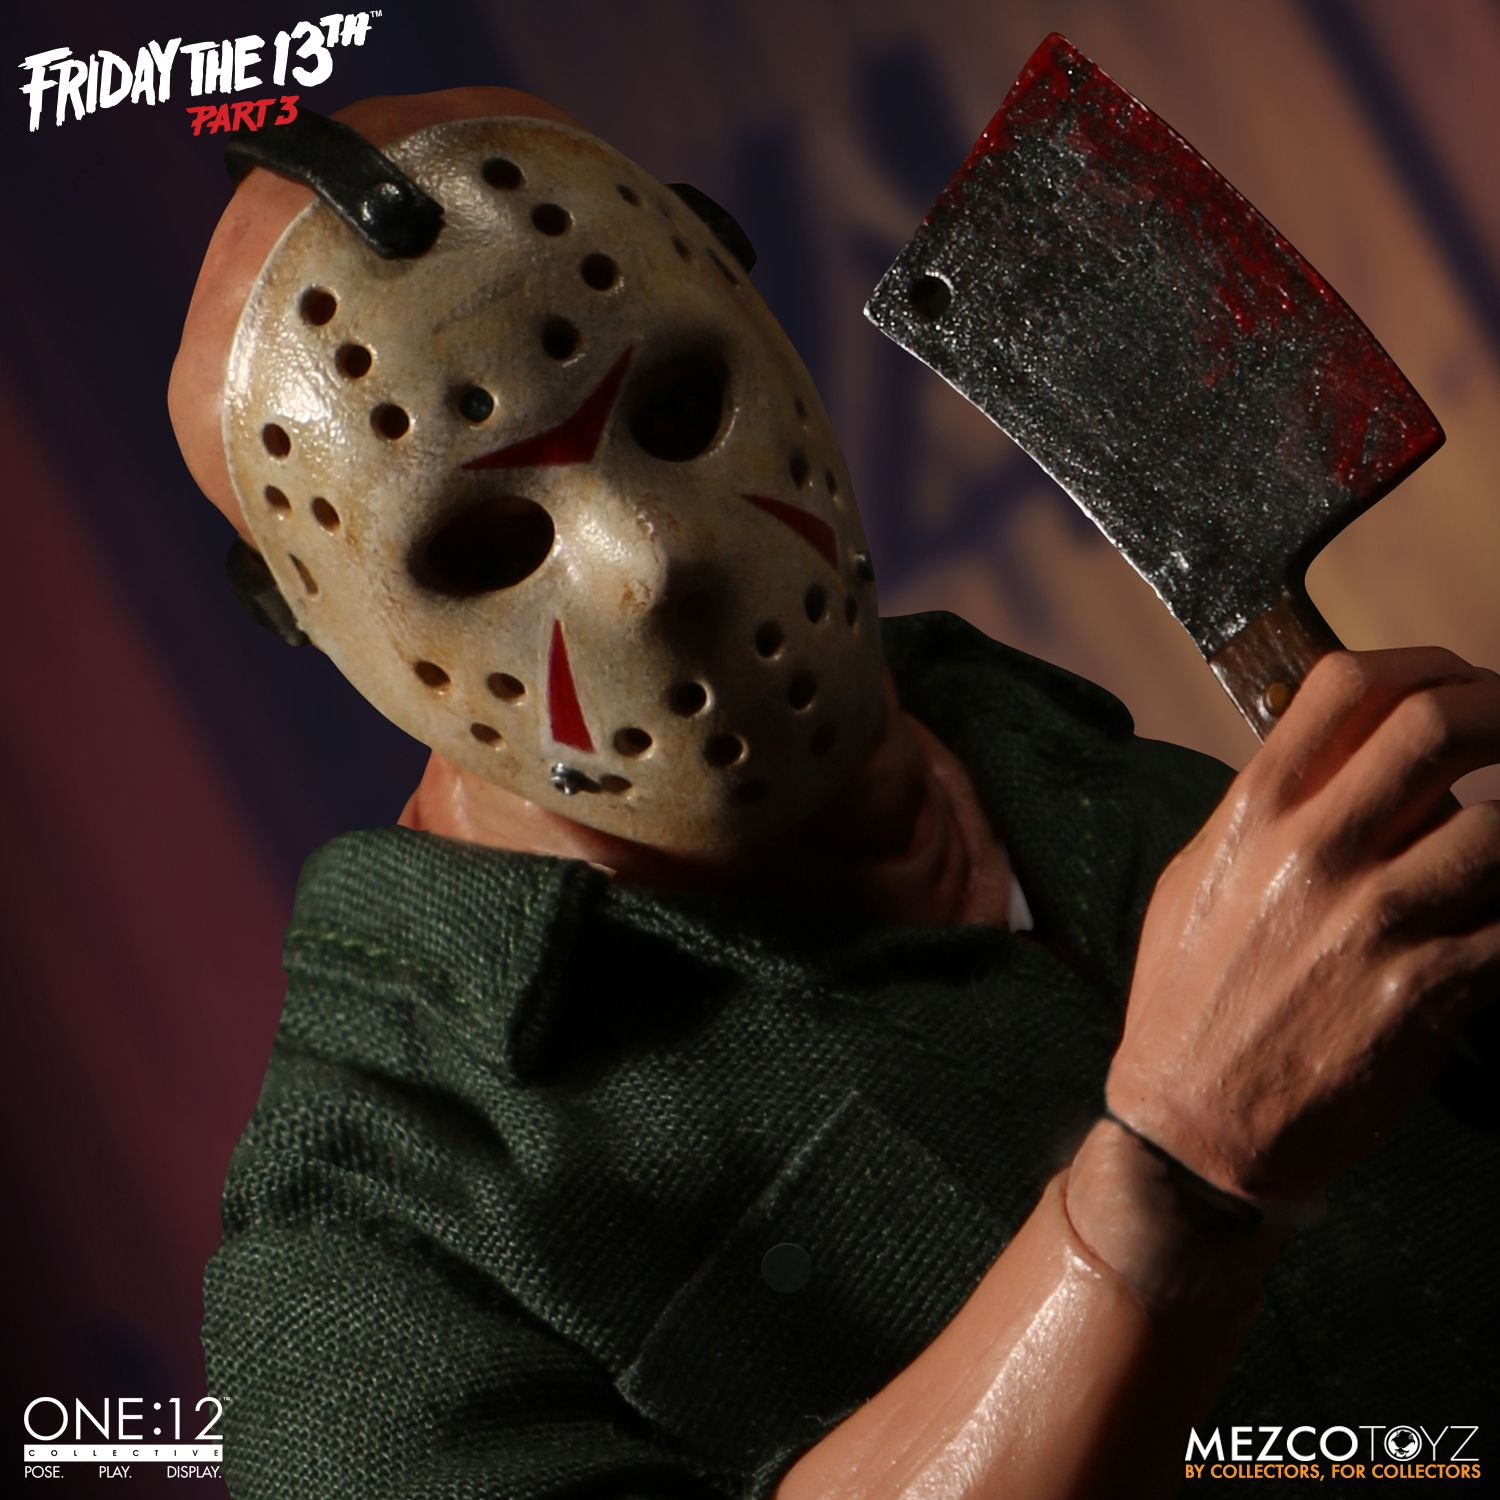 Mezco - One:12 Collective - Friday The 13th Part 3 - Jason Voorhees